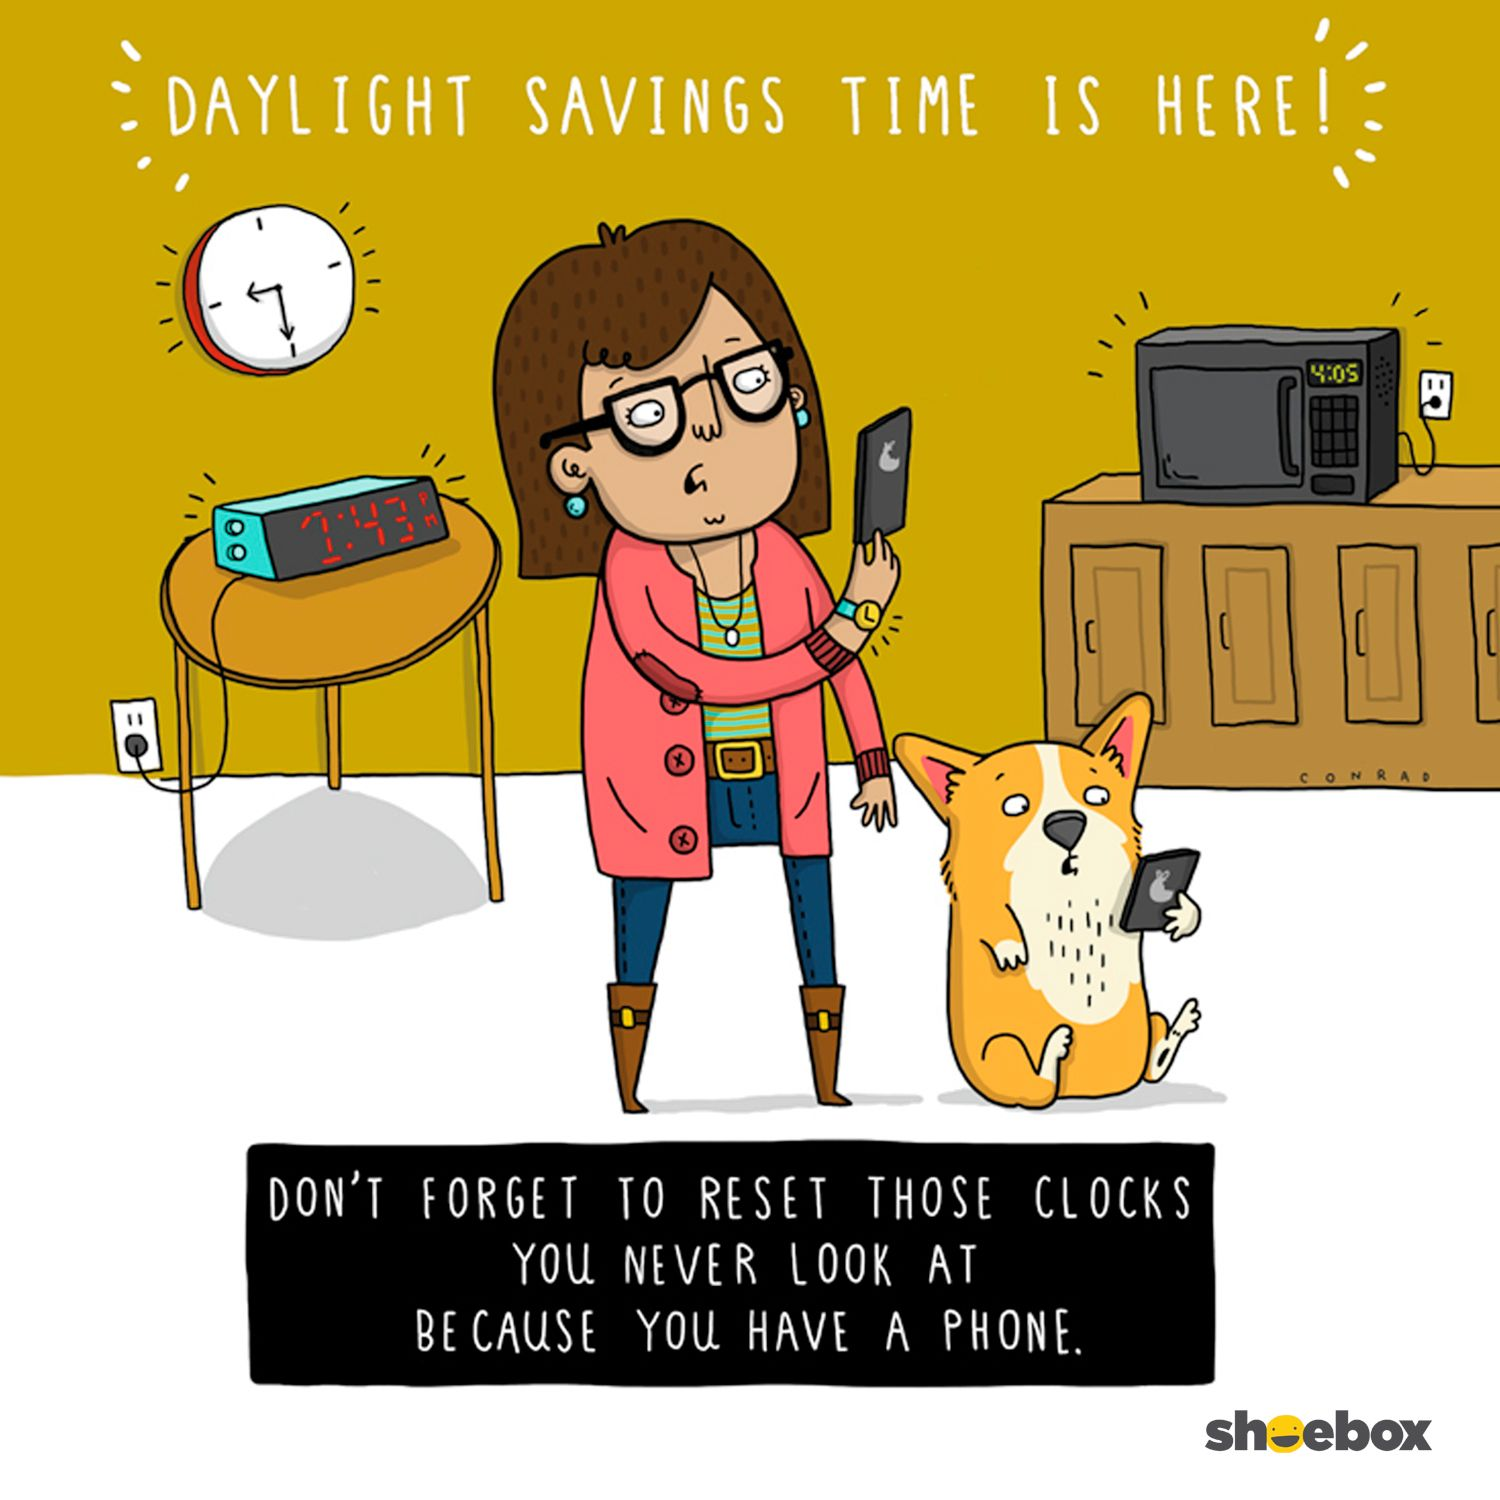 Spring Forward Fall Backward It S Daylight Savings Time Again Just A Funny Reminder To Ch Daylight Savings Time Daylight Savings Time Humor Daylight Savings